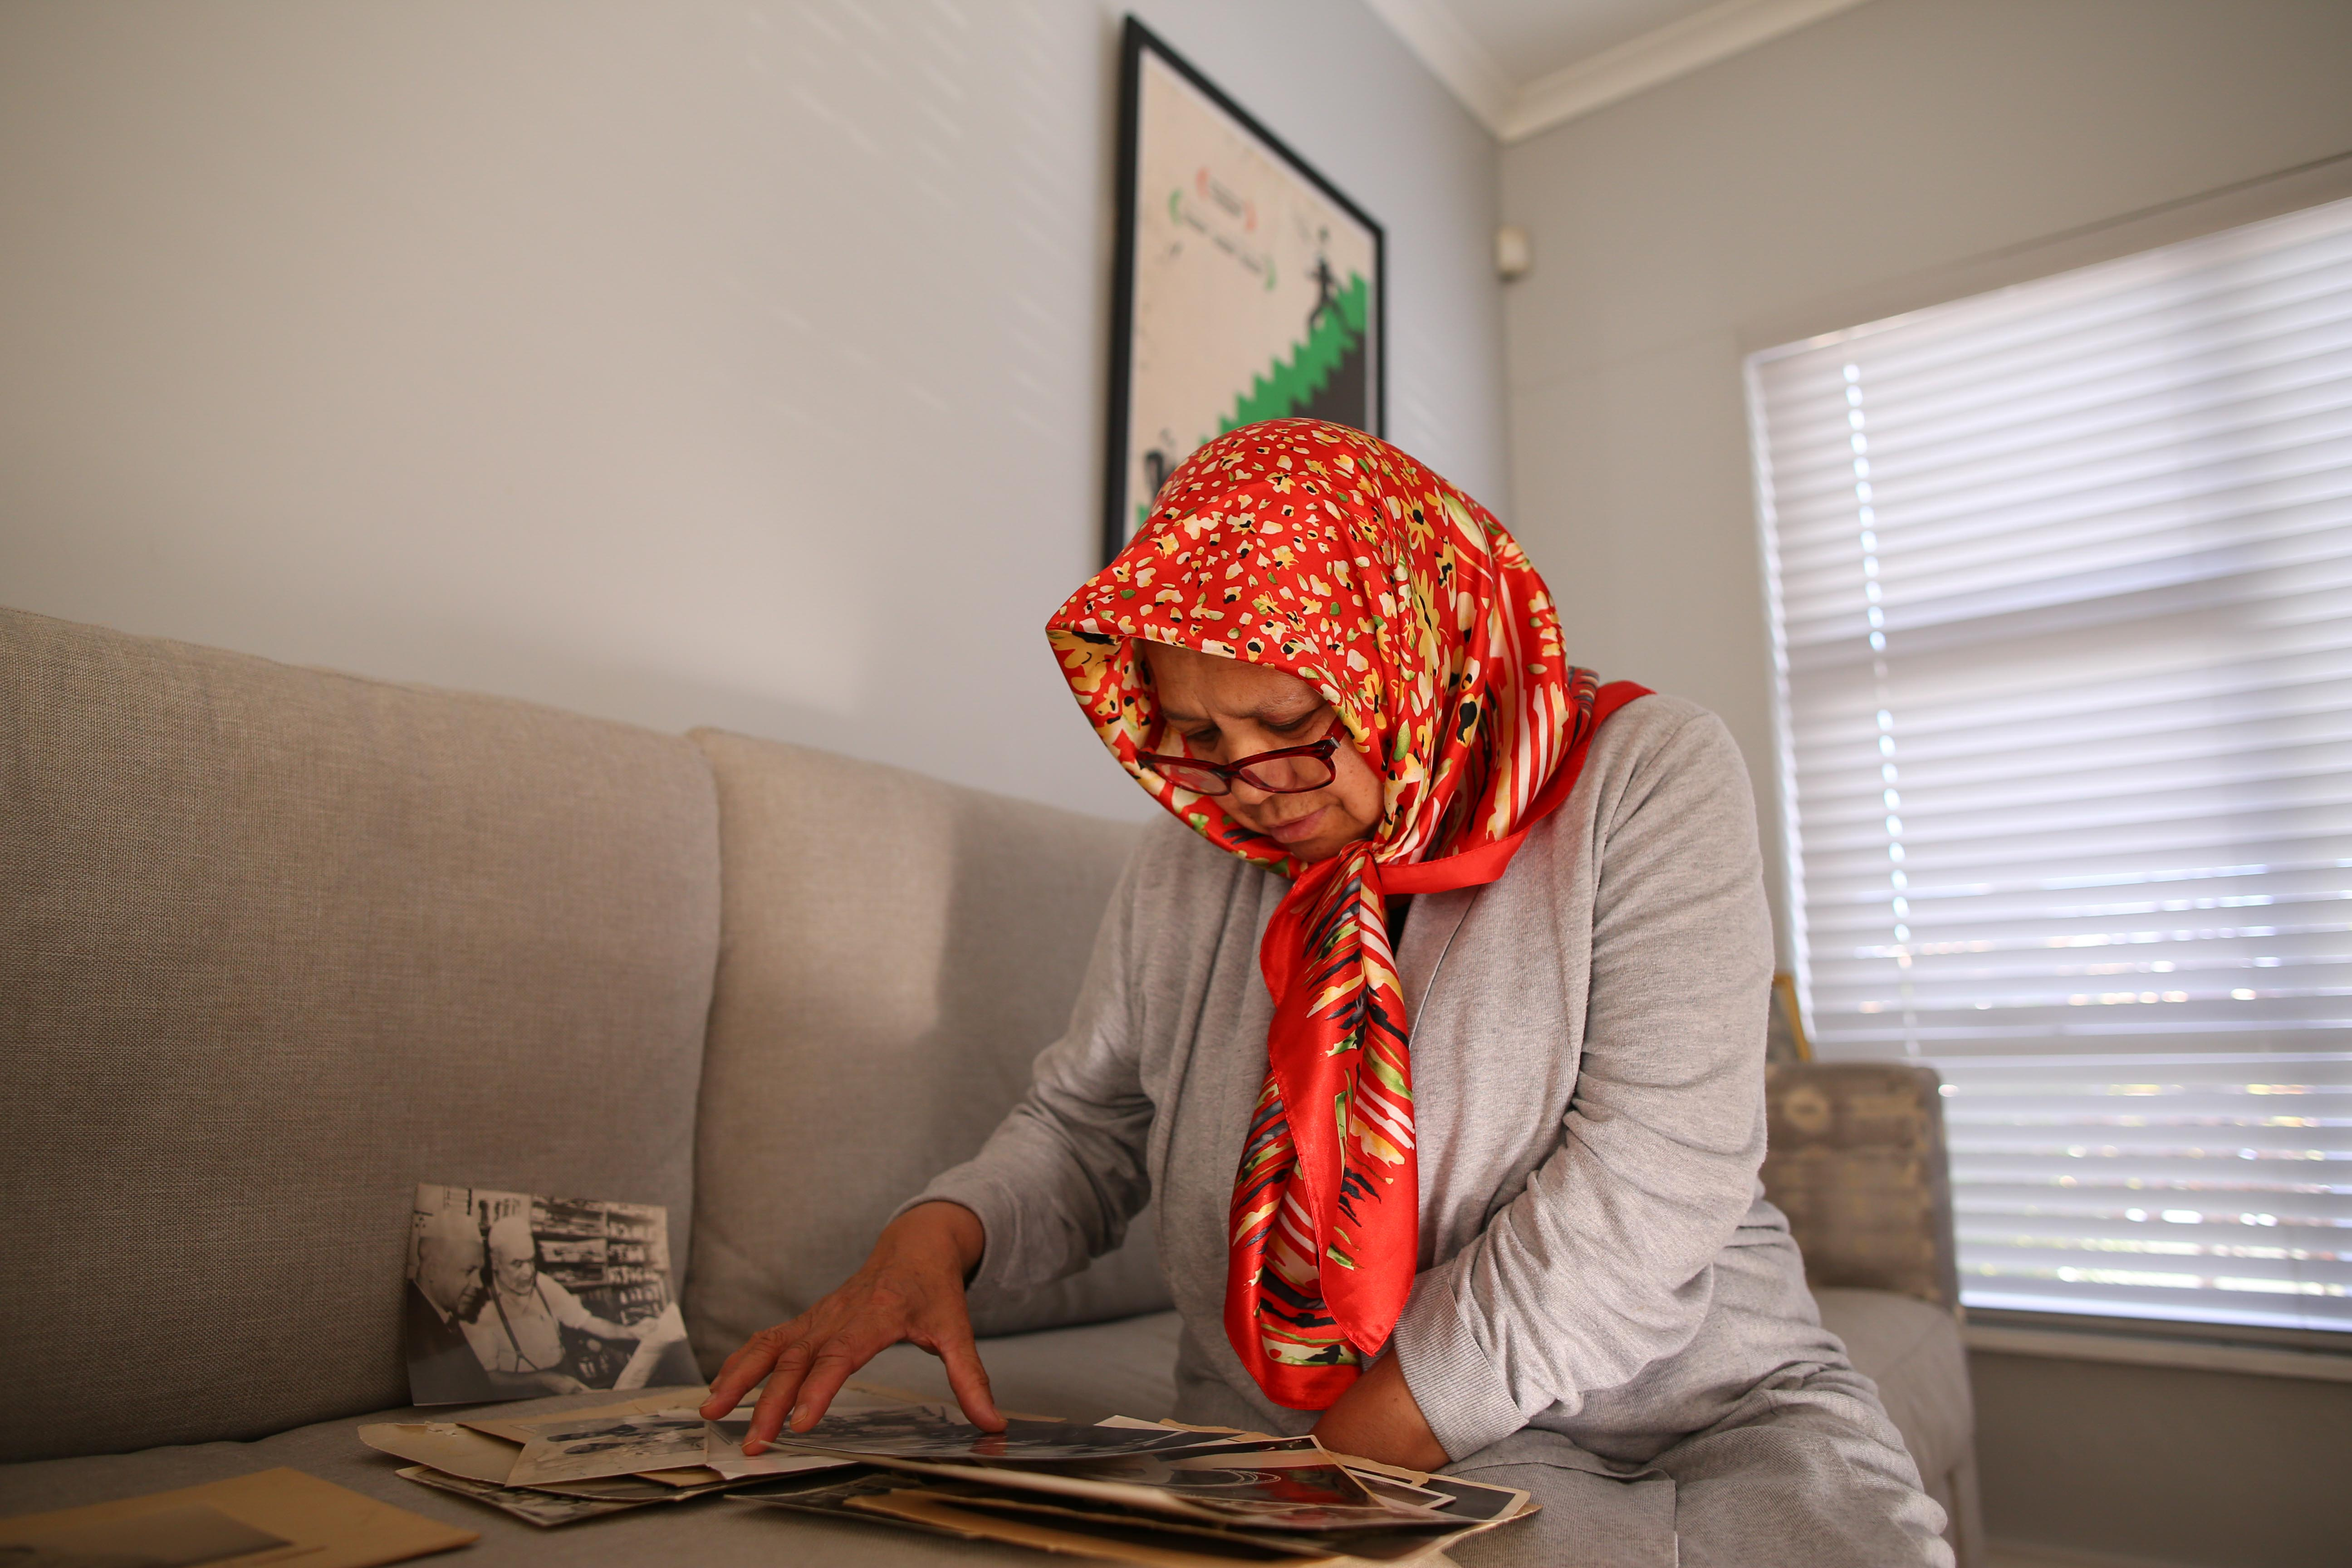 12 September 2019: Shamila Haron, Imam Haron's daughter, looks at old family photographs at the family home in Athlone, Cape Town.